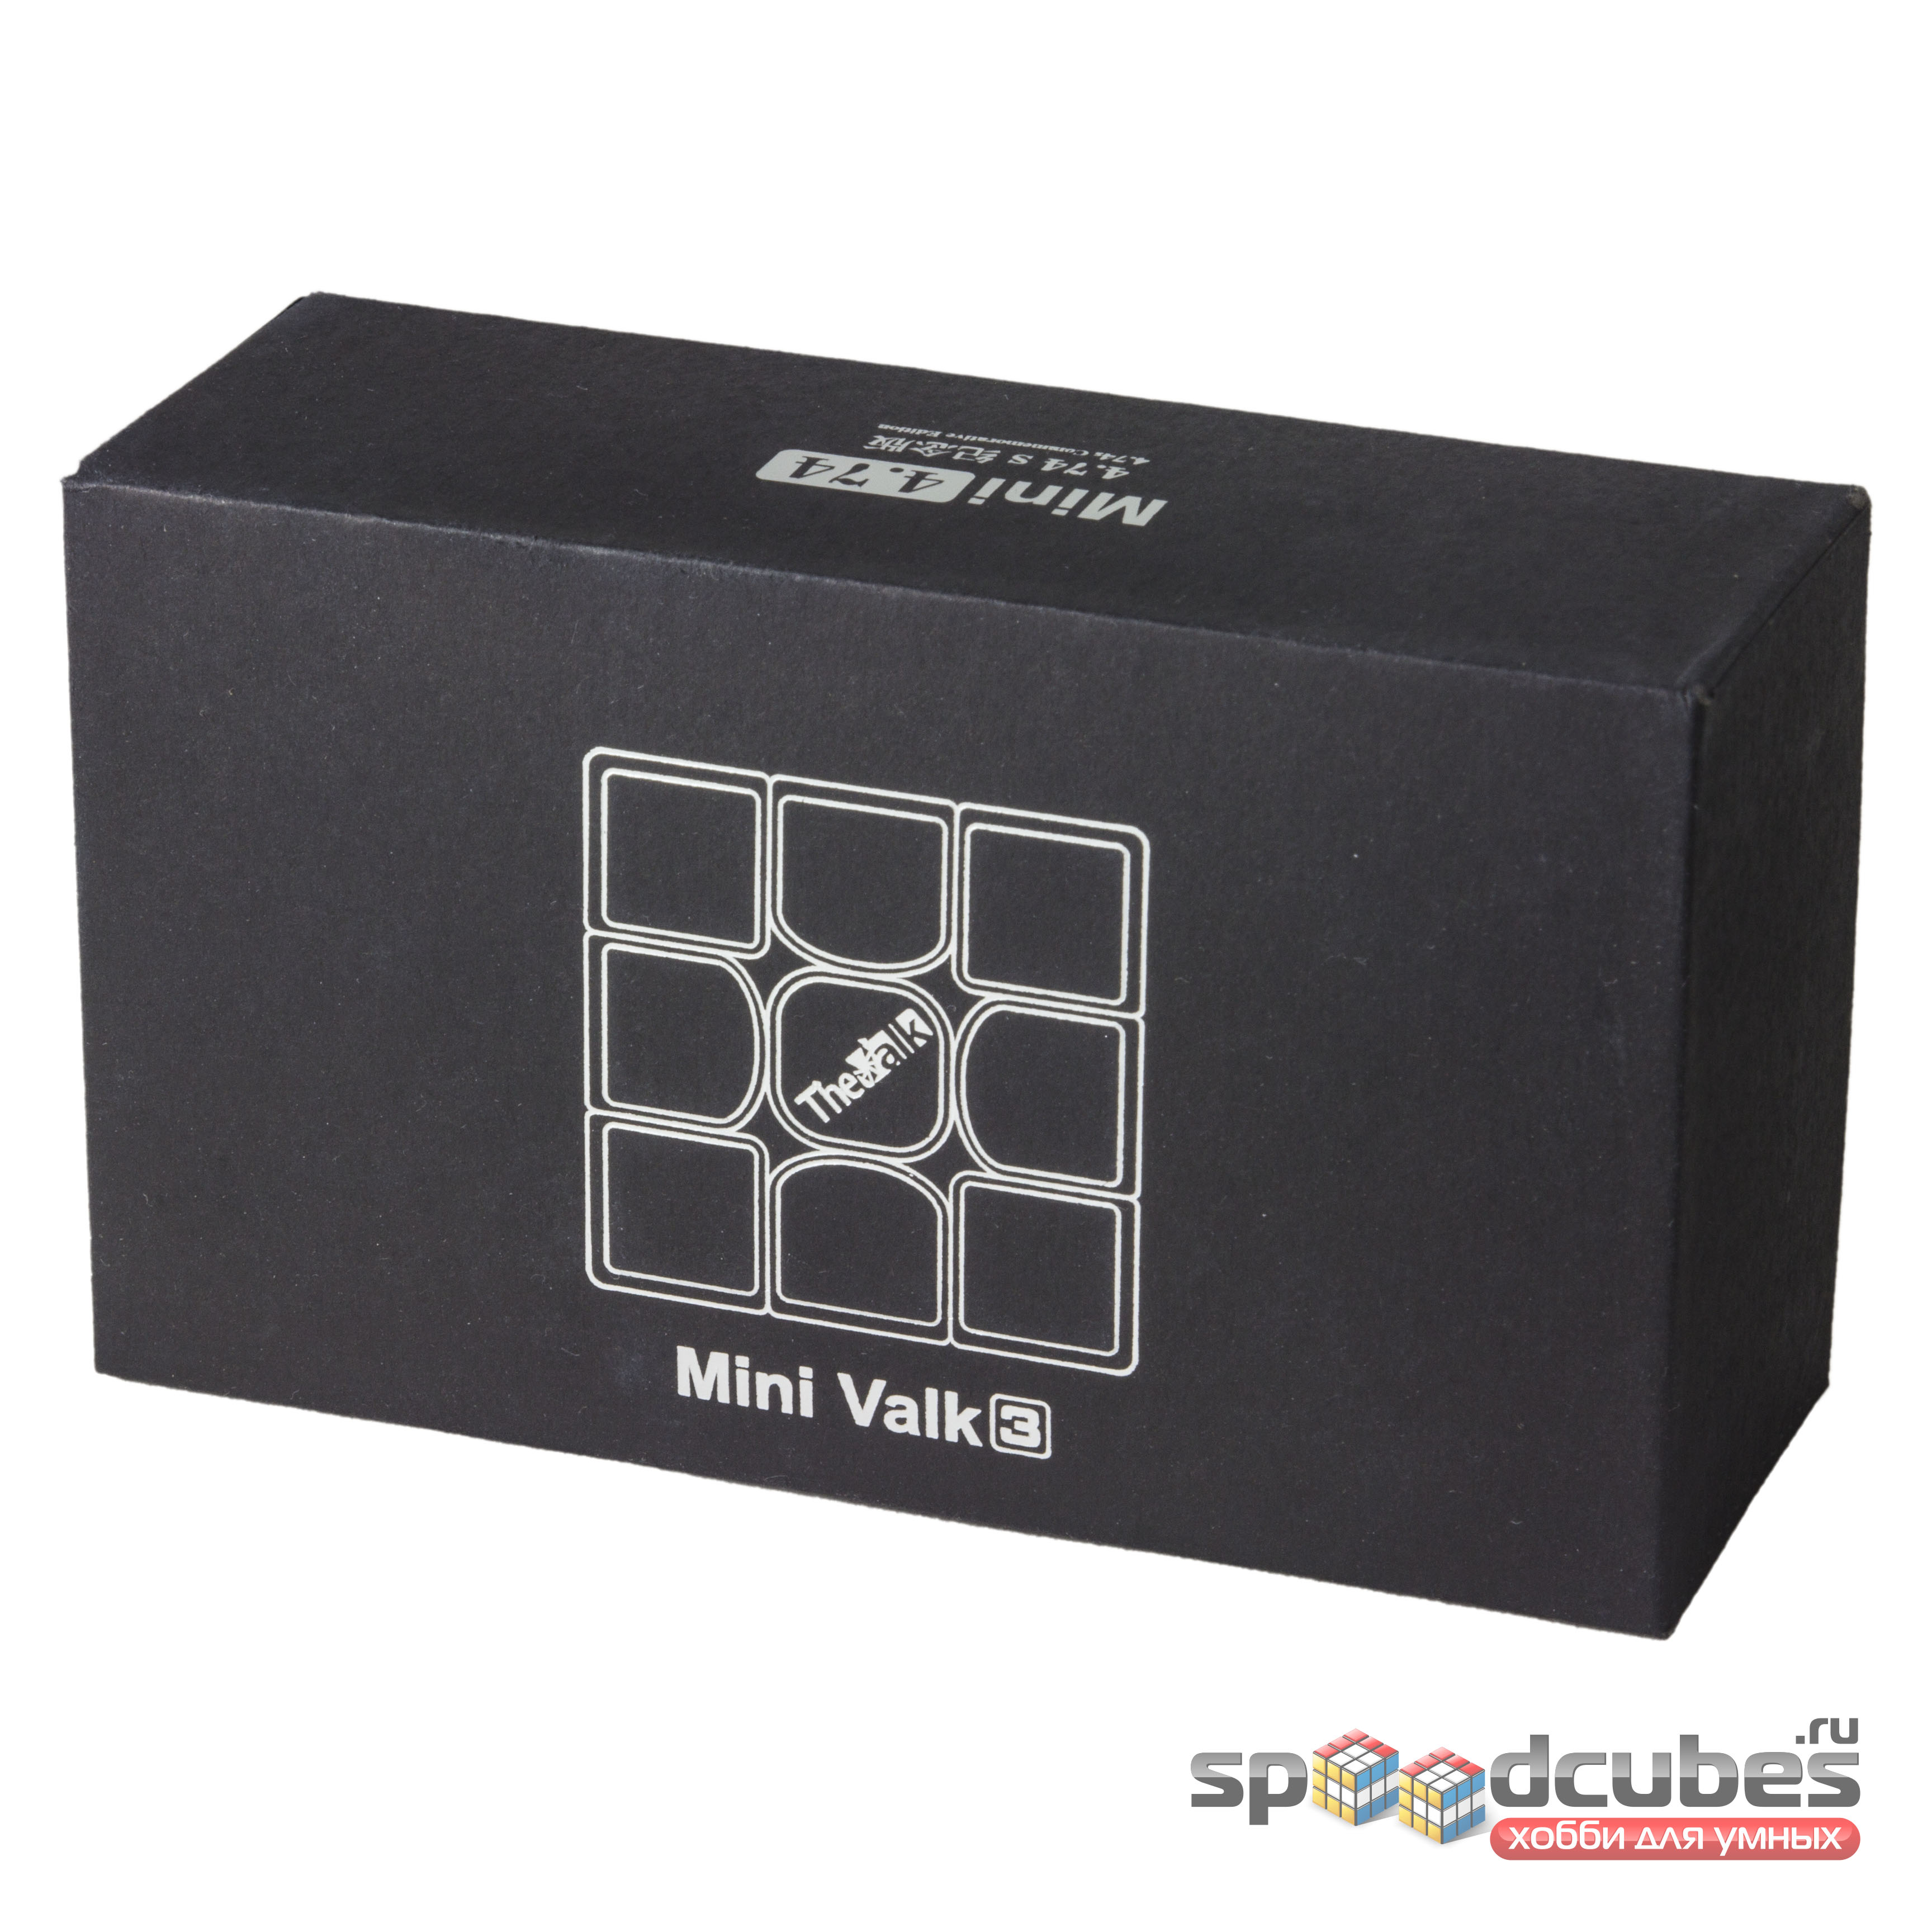 Qiyi Mofangge The Valk 3 Mini Black 1